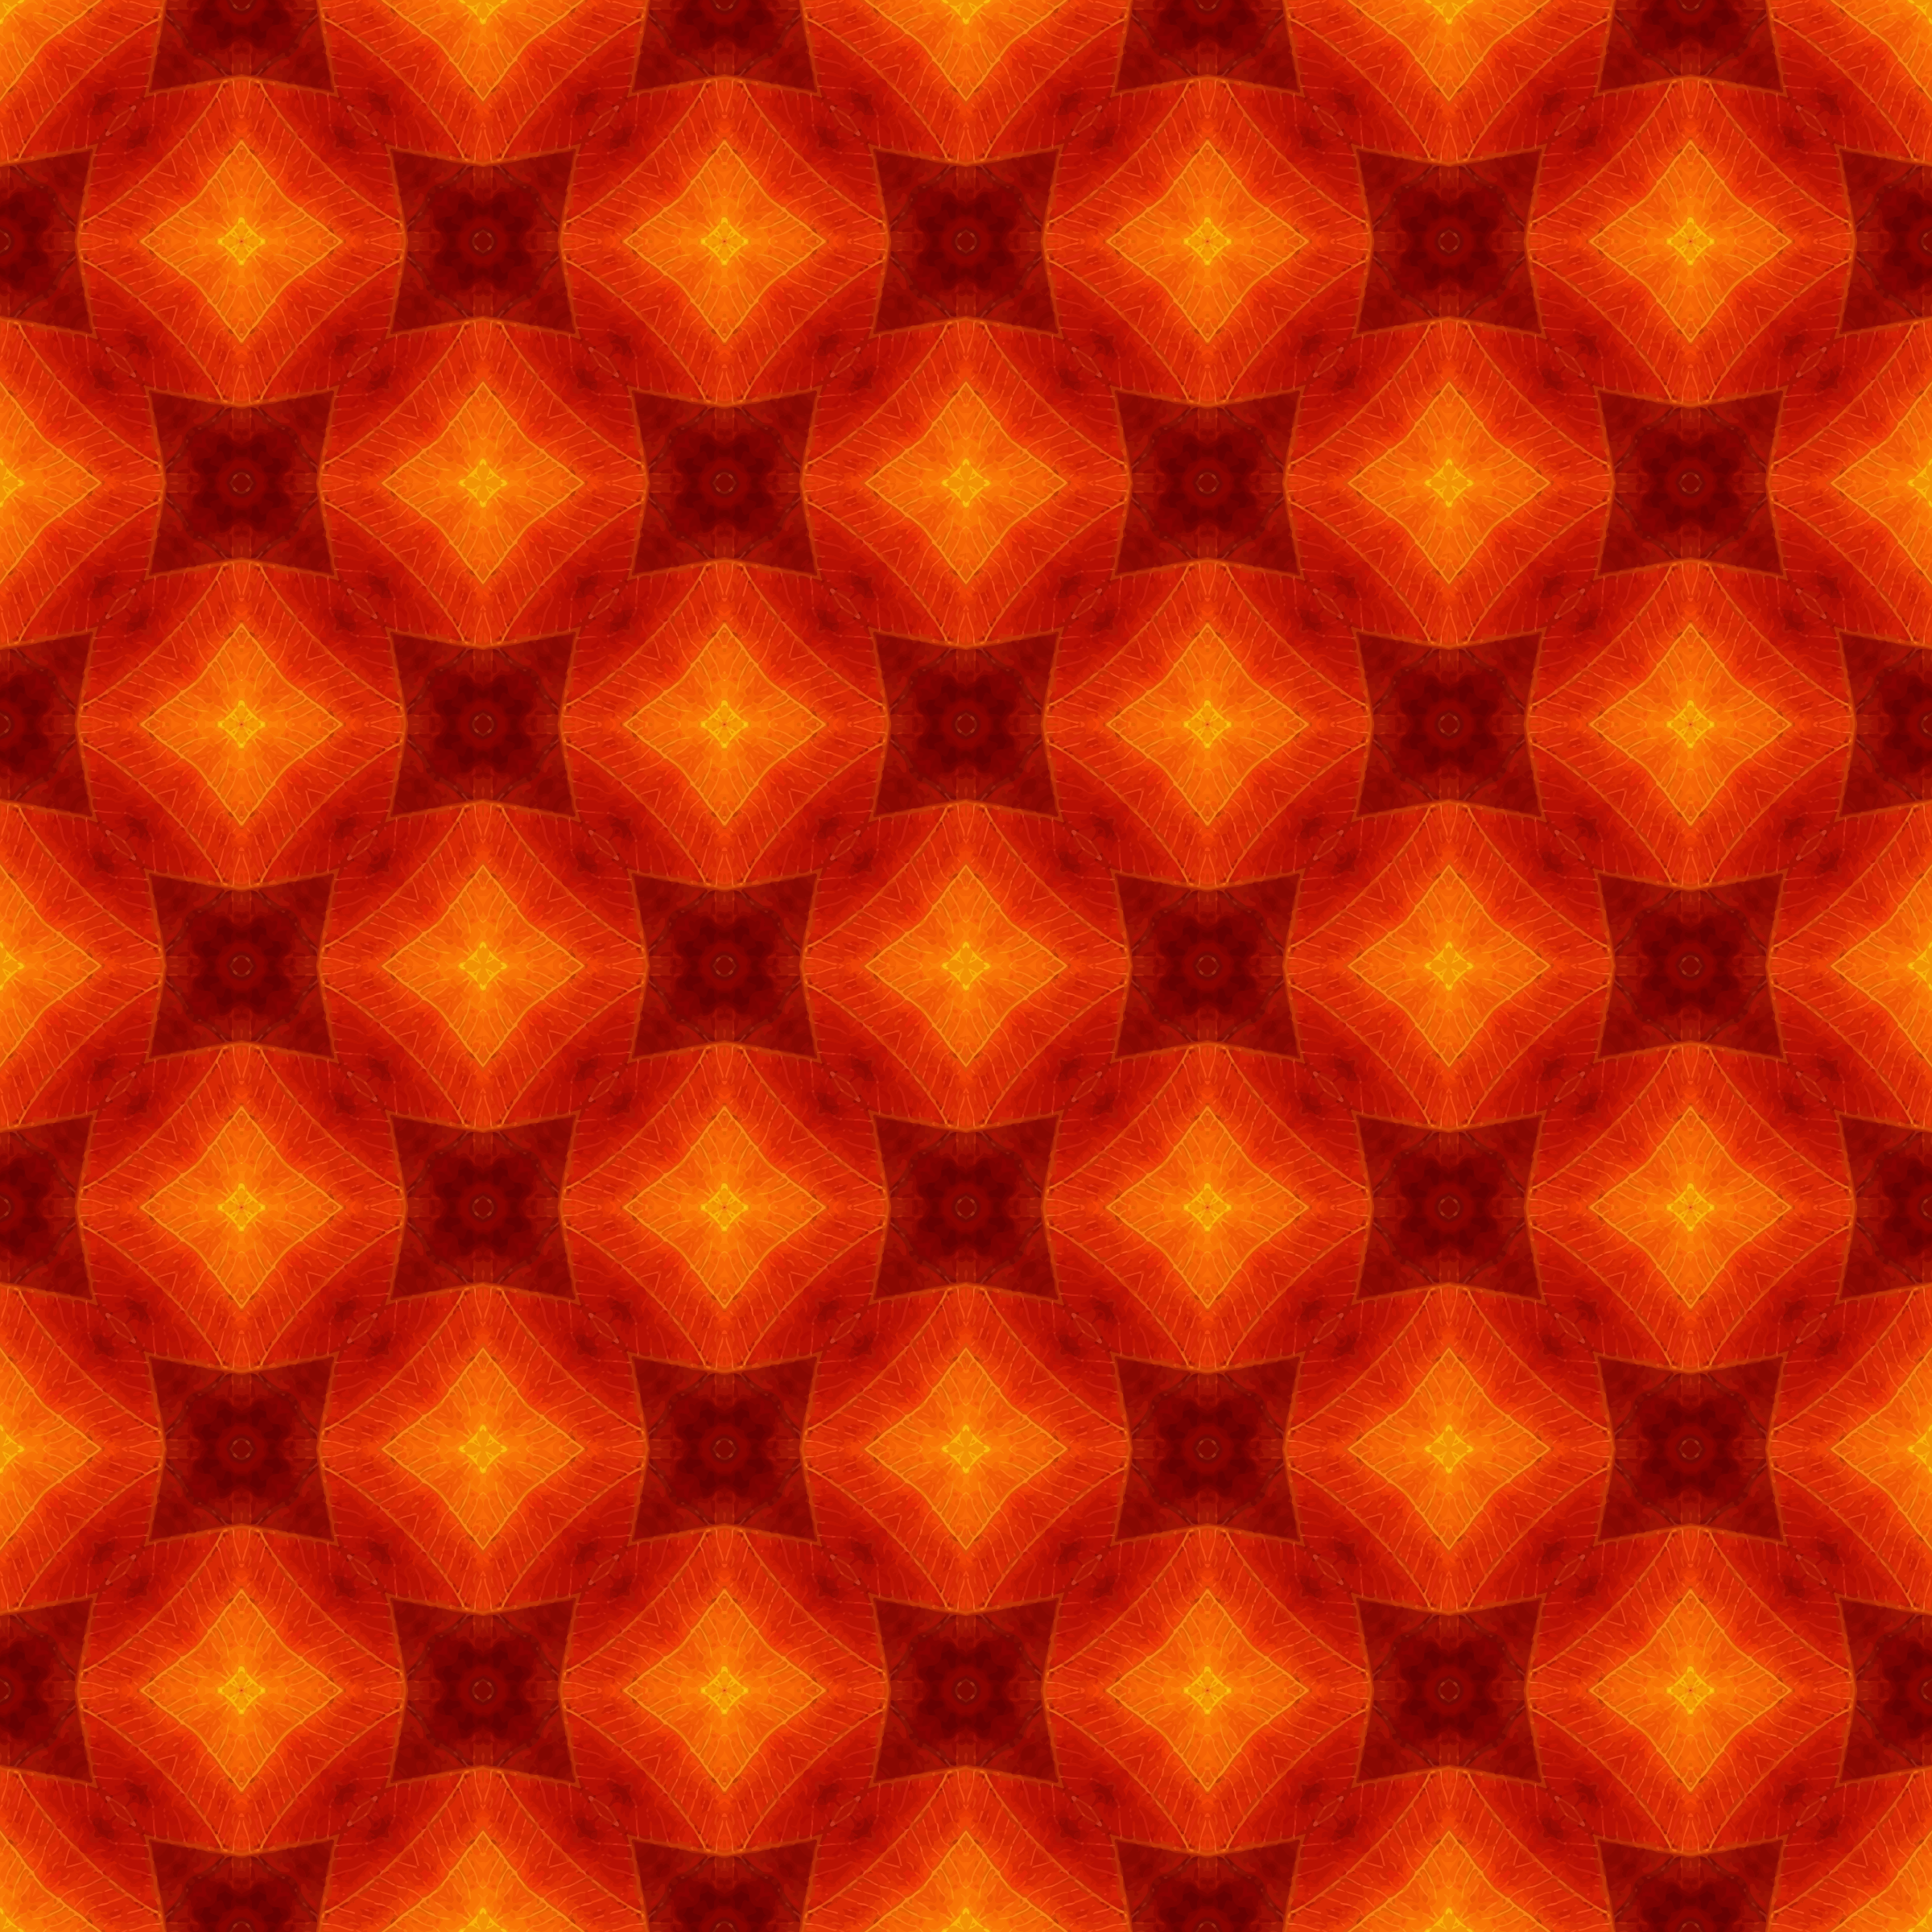 Background pattern 168 by Firkin